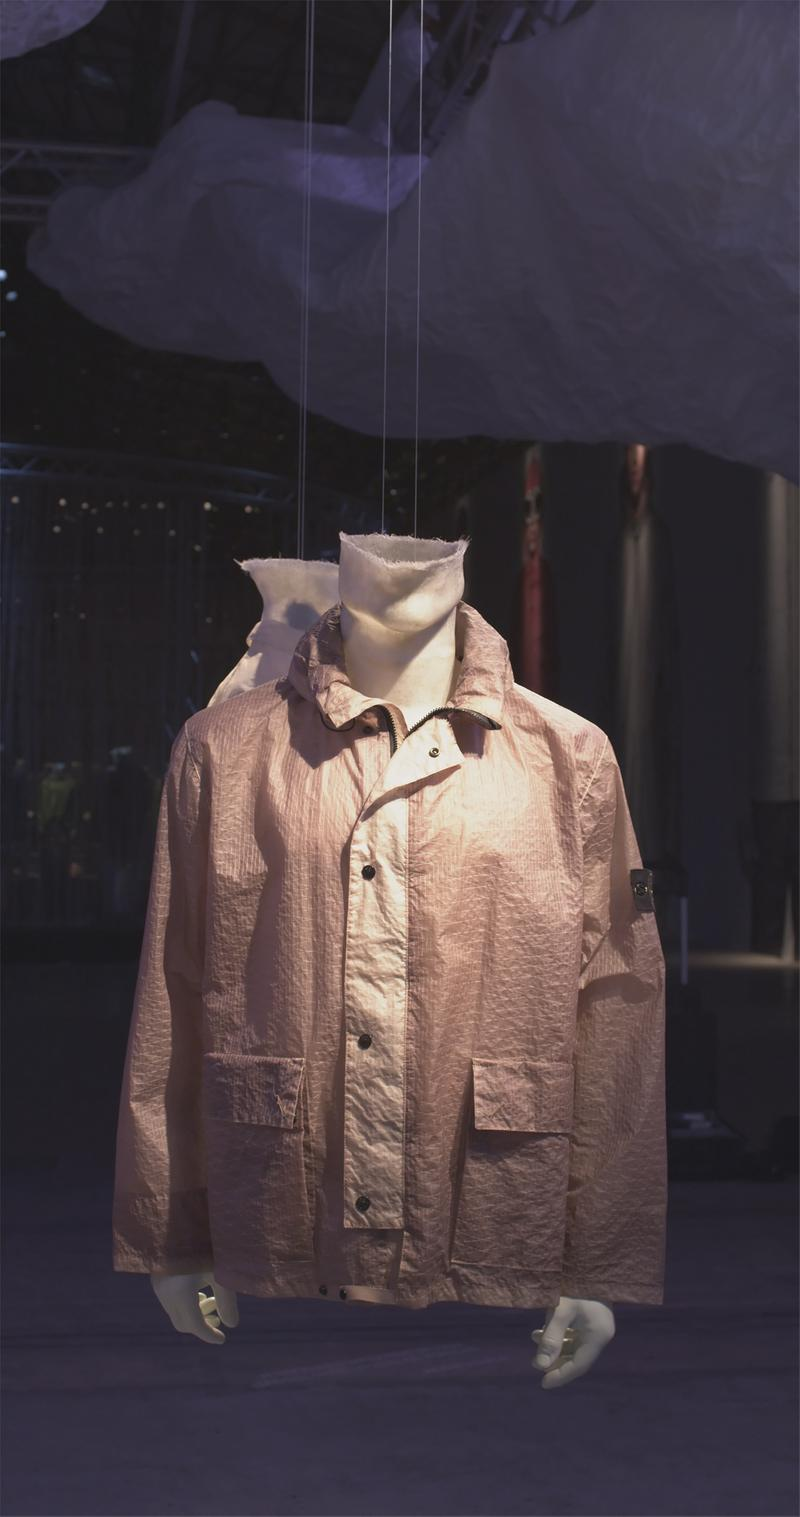 Beige textured jacket with shirt collar, contrasting button placket down the front, flap pockets on the bottom displayed on mannequin bust